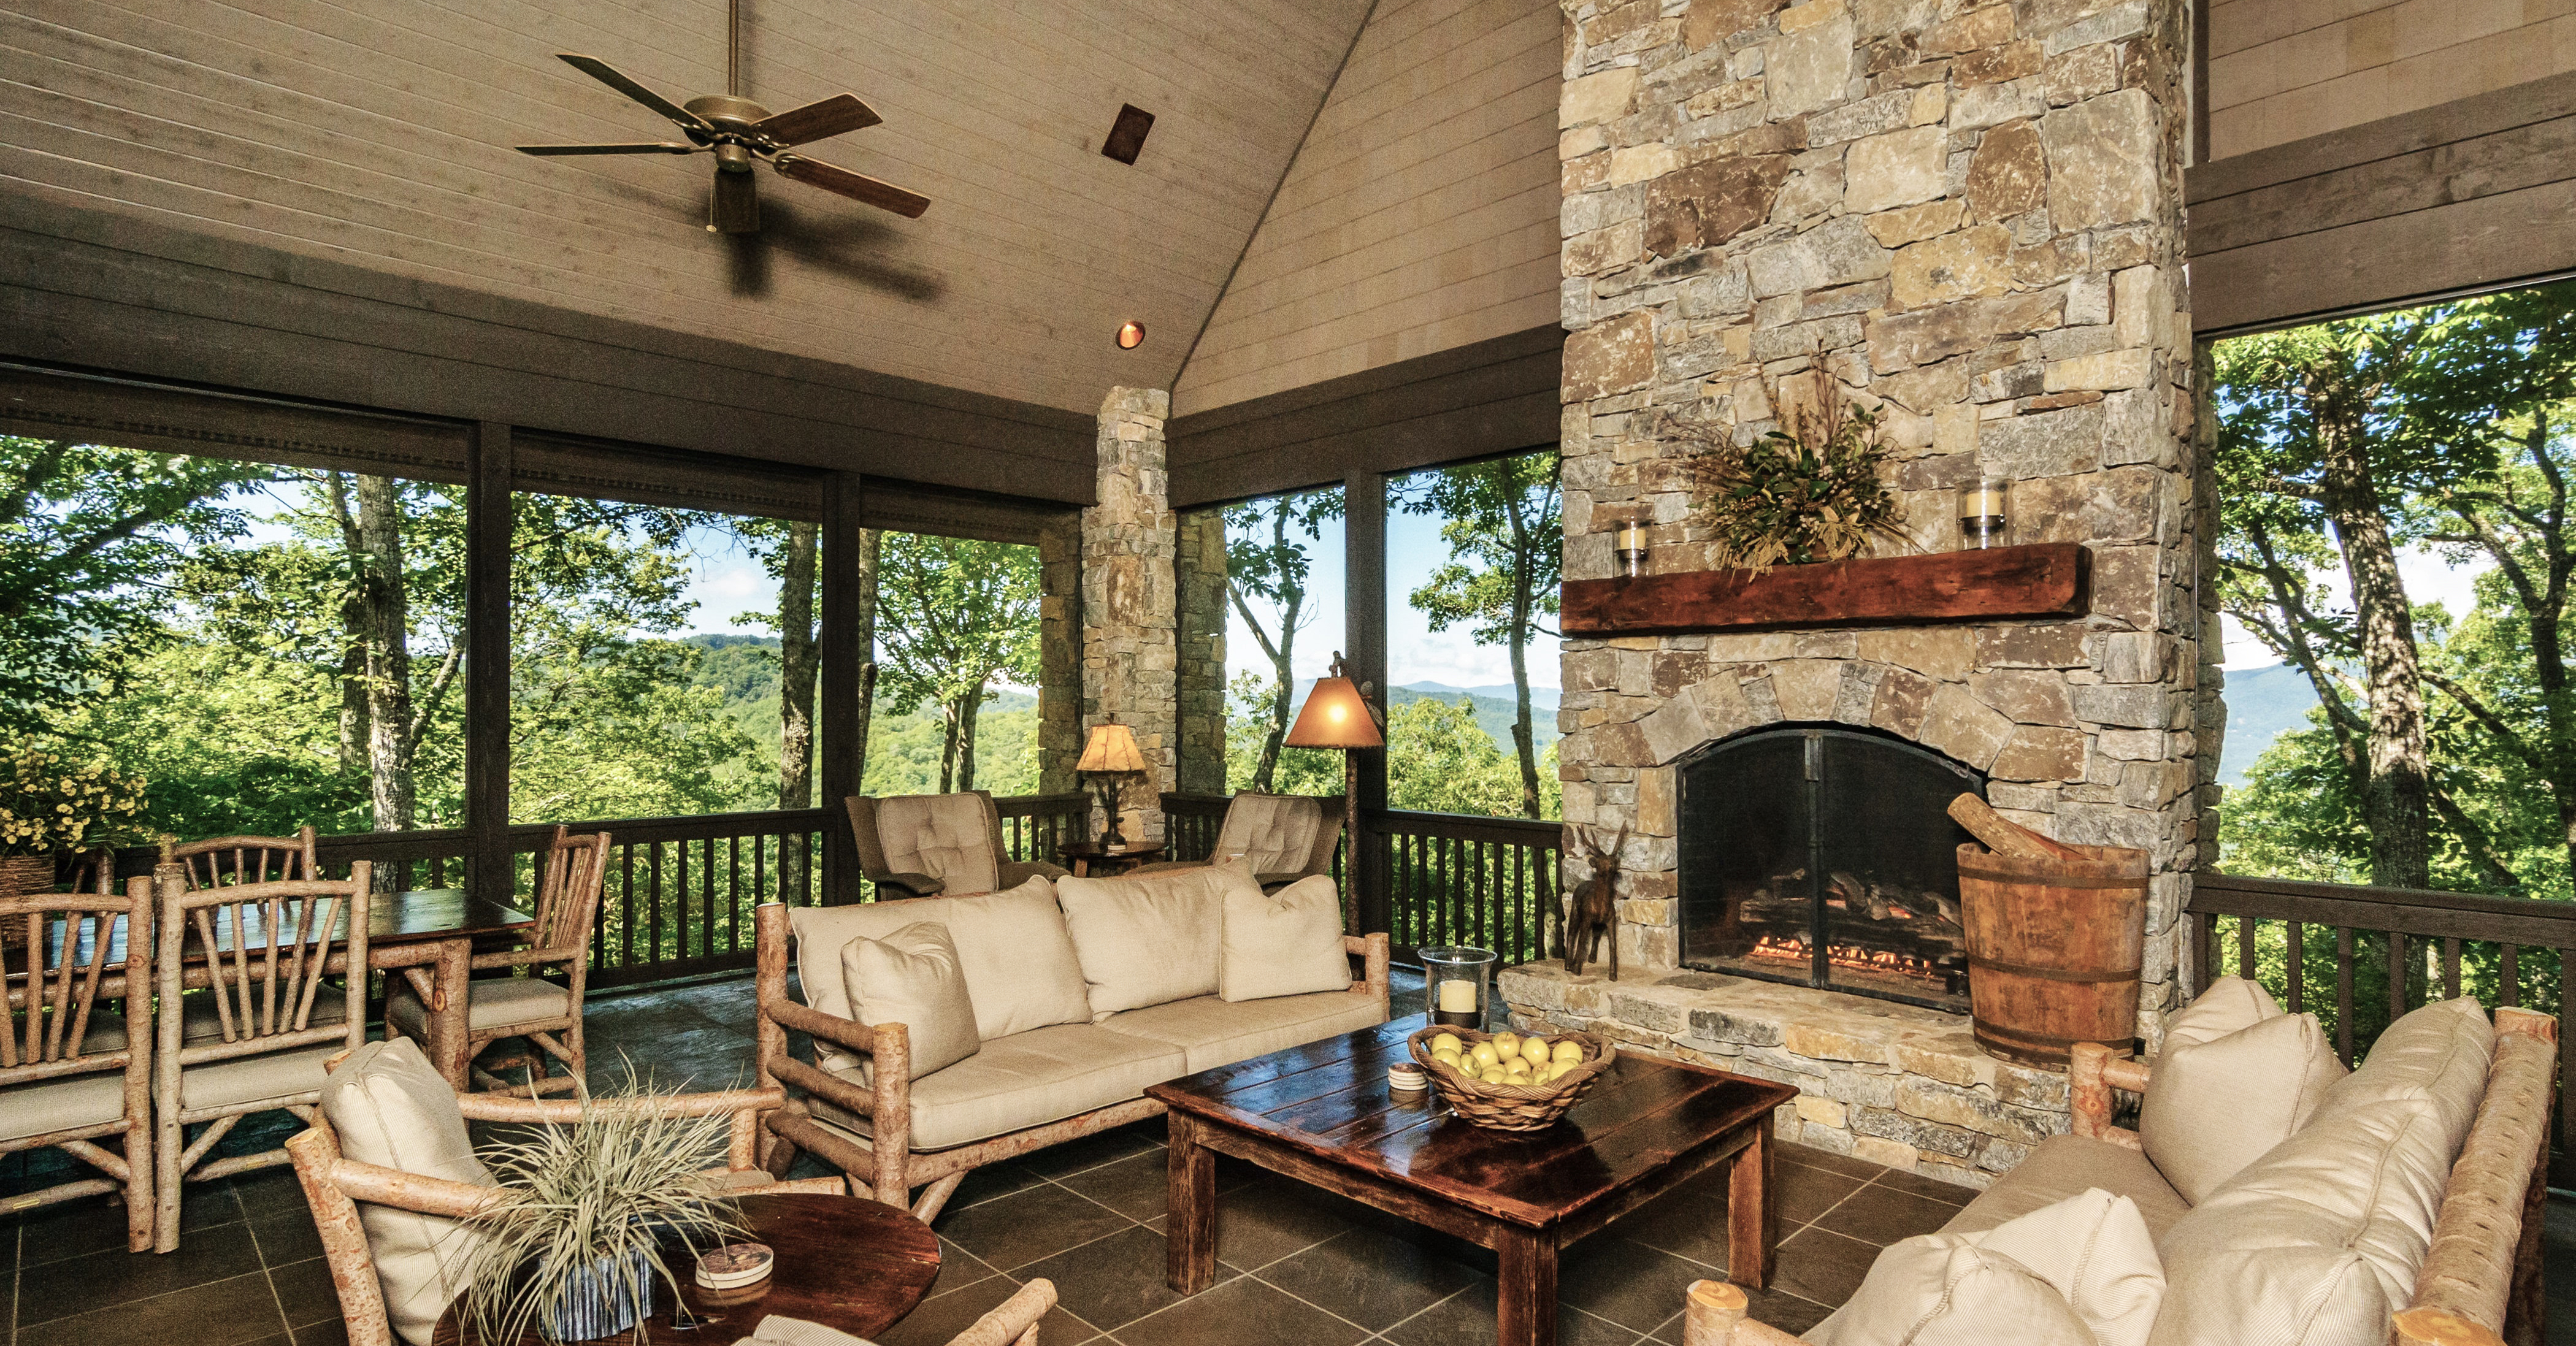 The Latest Trend in Luxury Home Amenities: National Parks